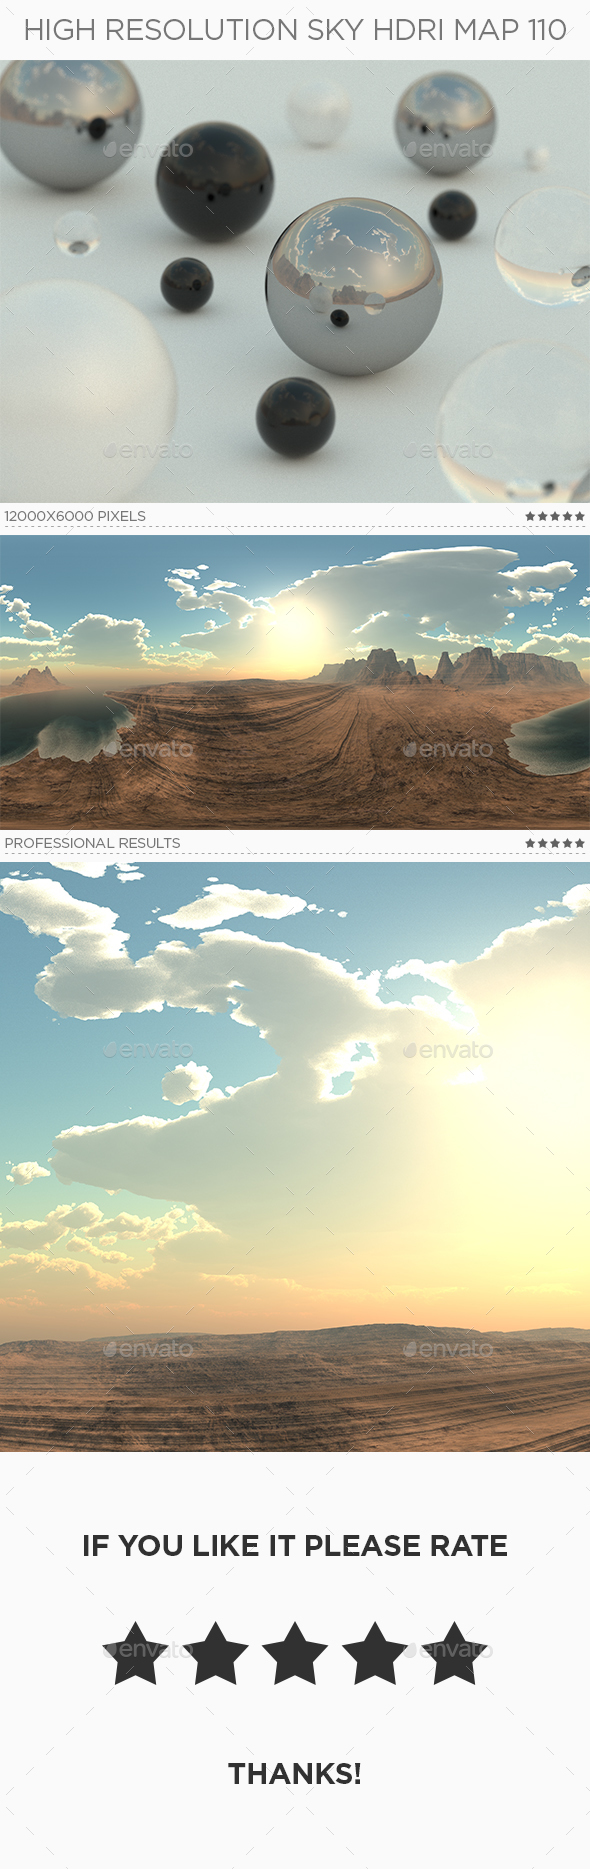 High Resolution Sky HDRi Map 110 - 3DOcean Item for Sale